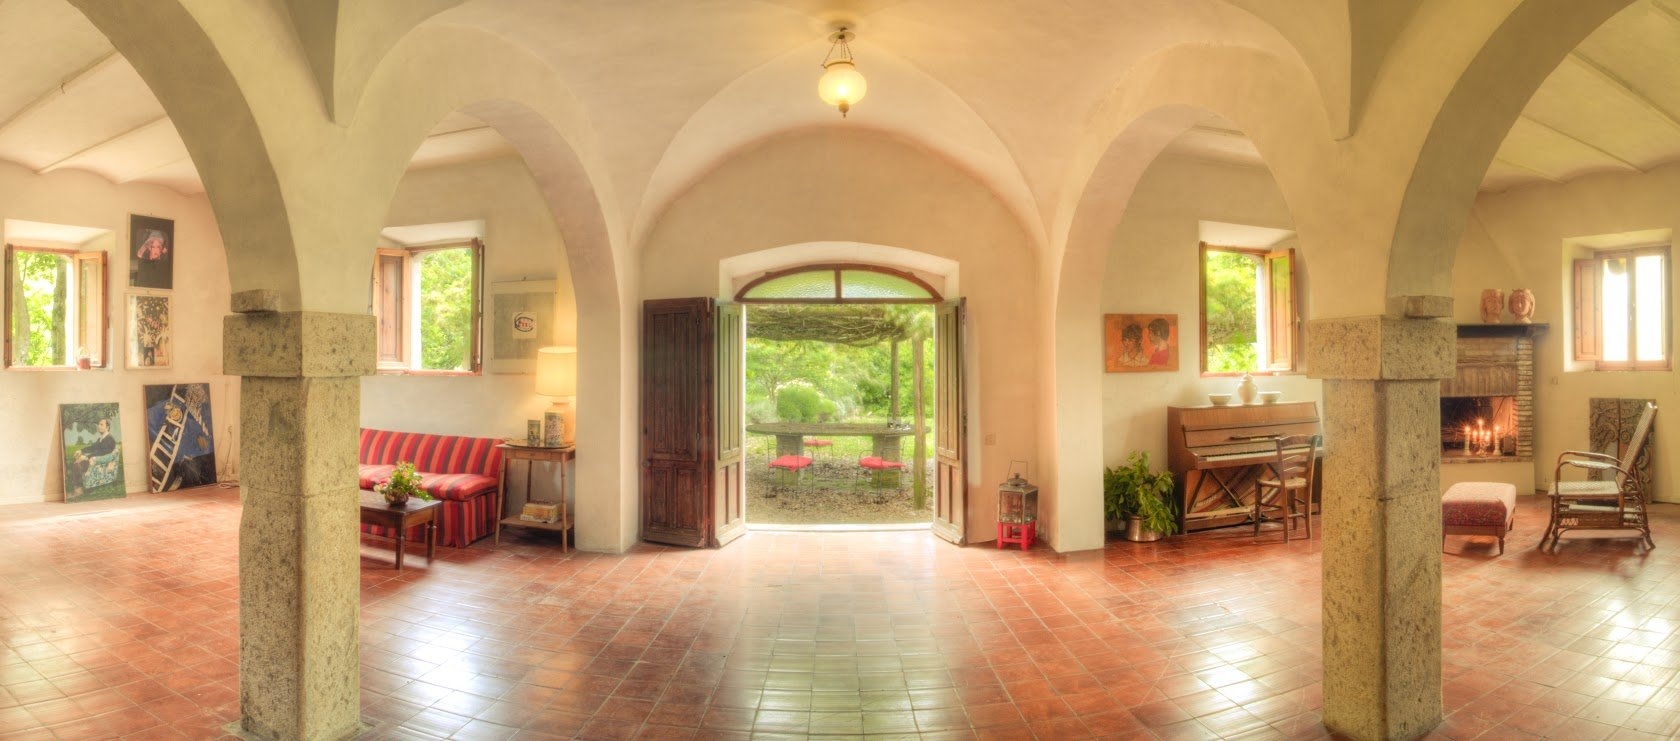 Villa Pettirosso in Umbria - Living